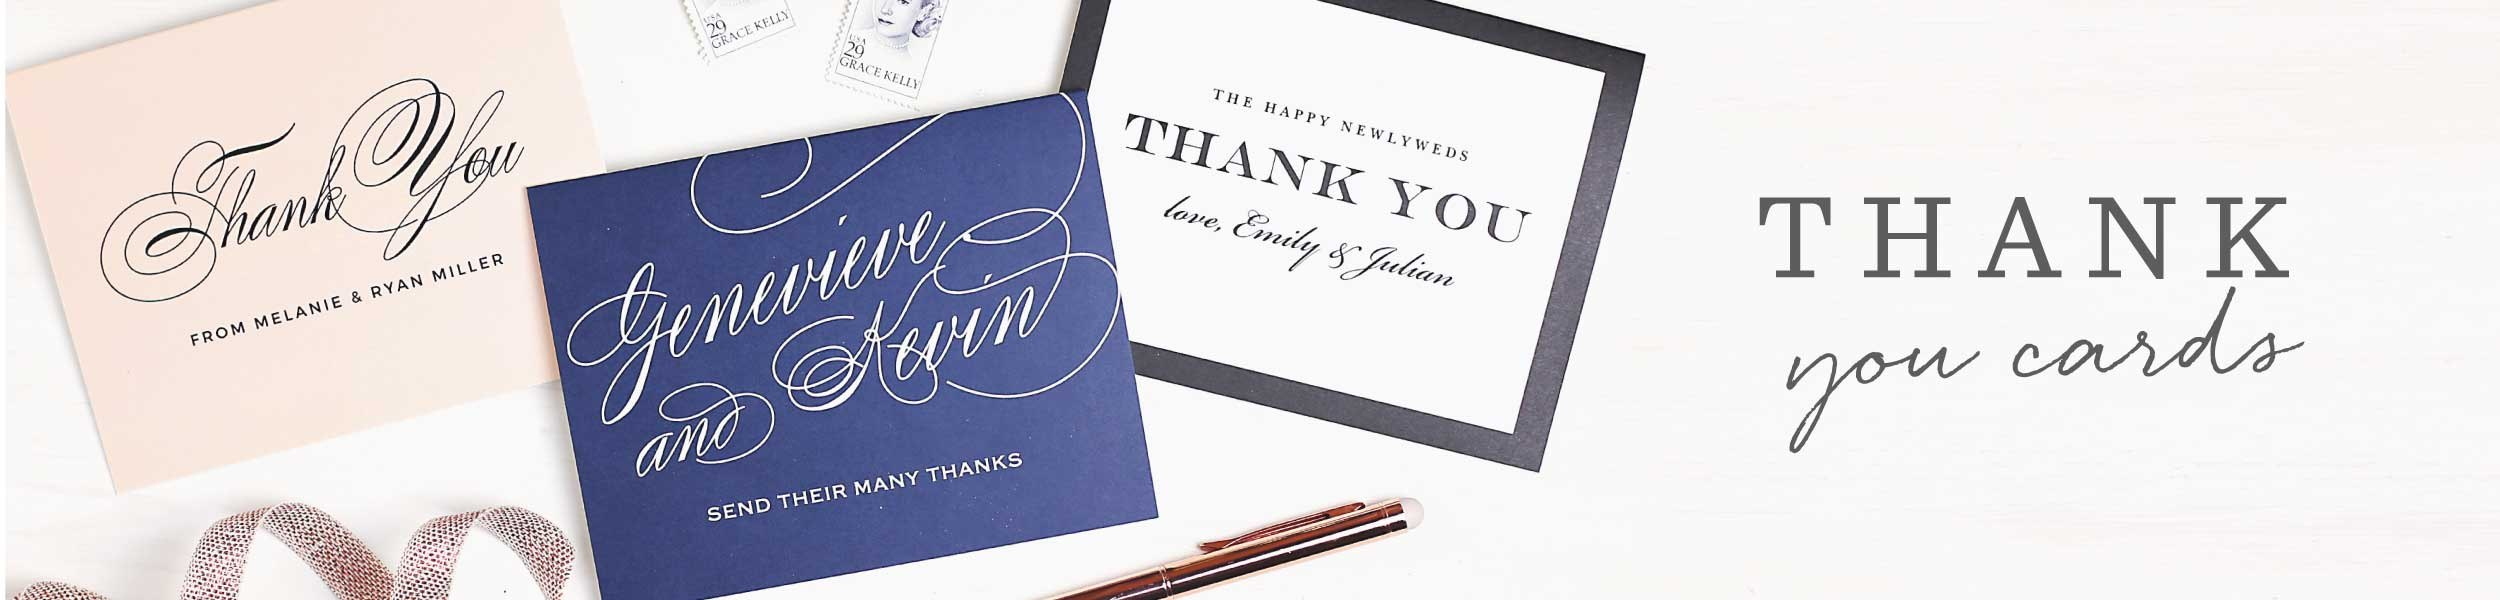 Baby Shower Thank You Cards  Match Your Color  Style Free  Basic With Regard To Template For Baby Shower Thank You Cards